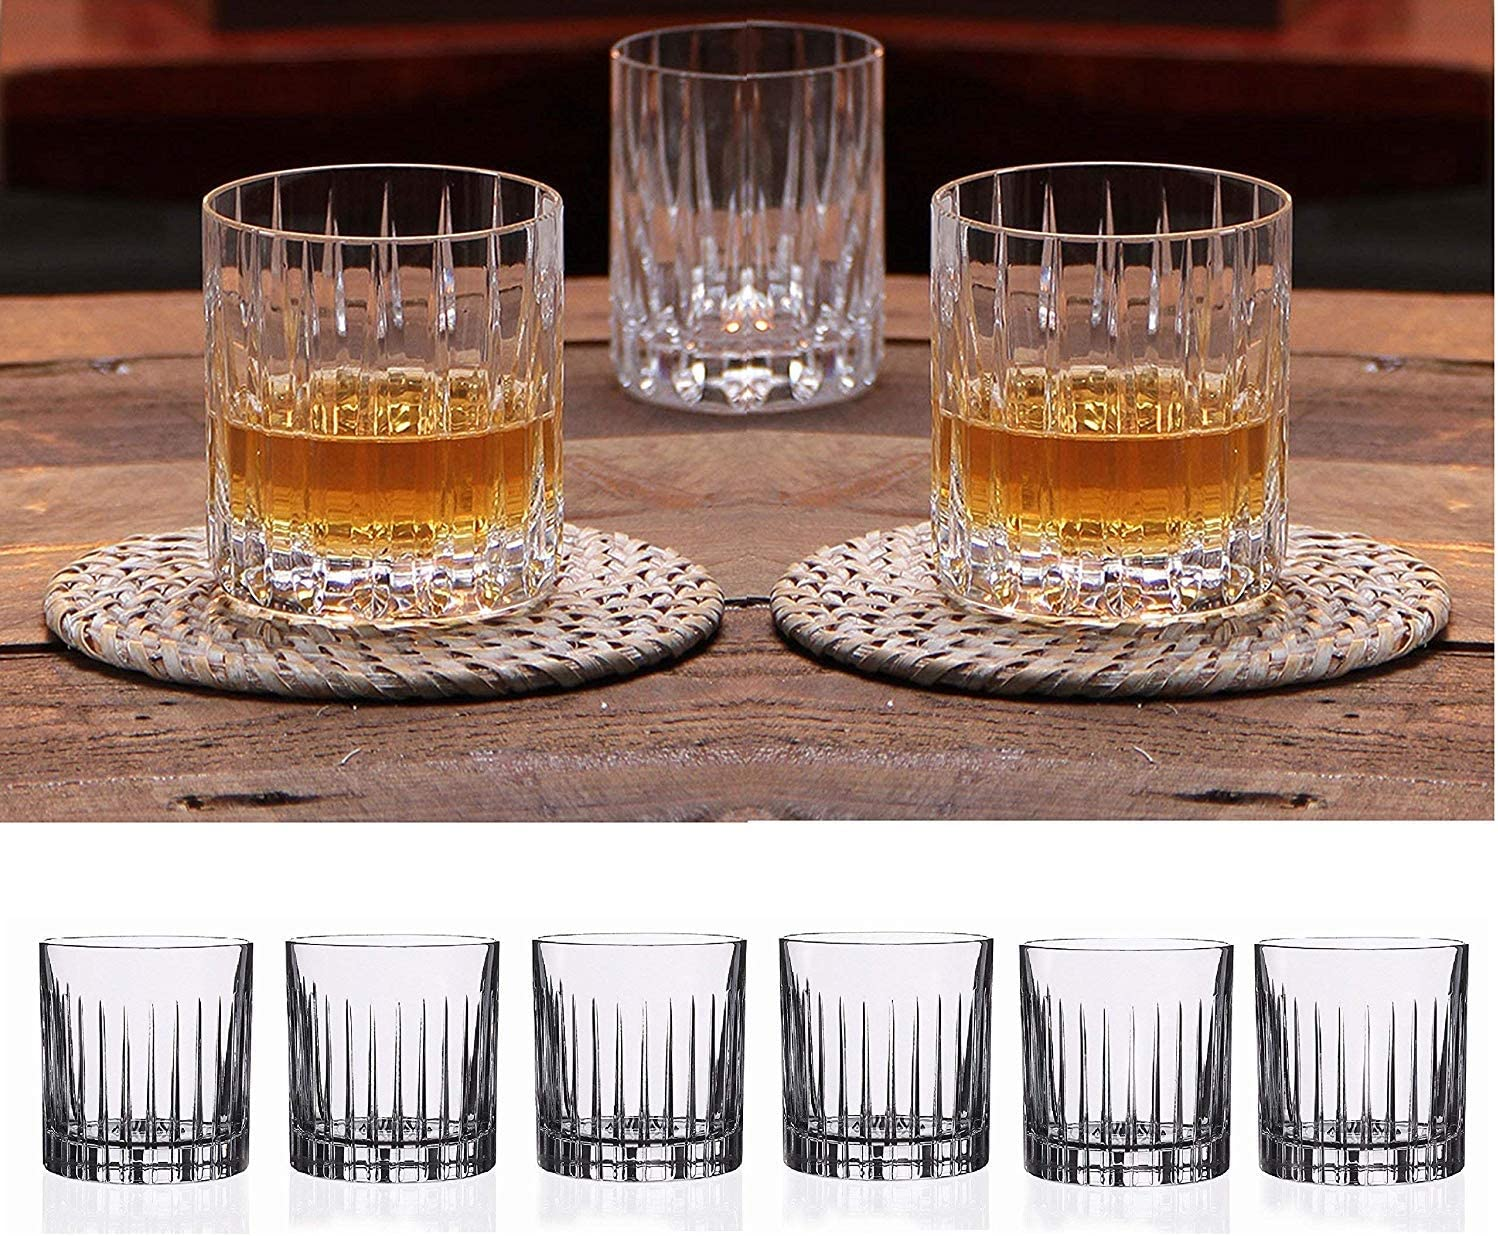 Double Old Fashioned Crystal Glasses, Set of 6 Whiskey Glasses, Perfect for Serving Scotch, Cocktails, or Mixed Drinks. (New York) pattern